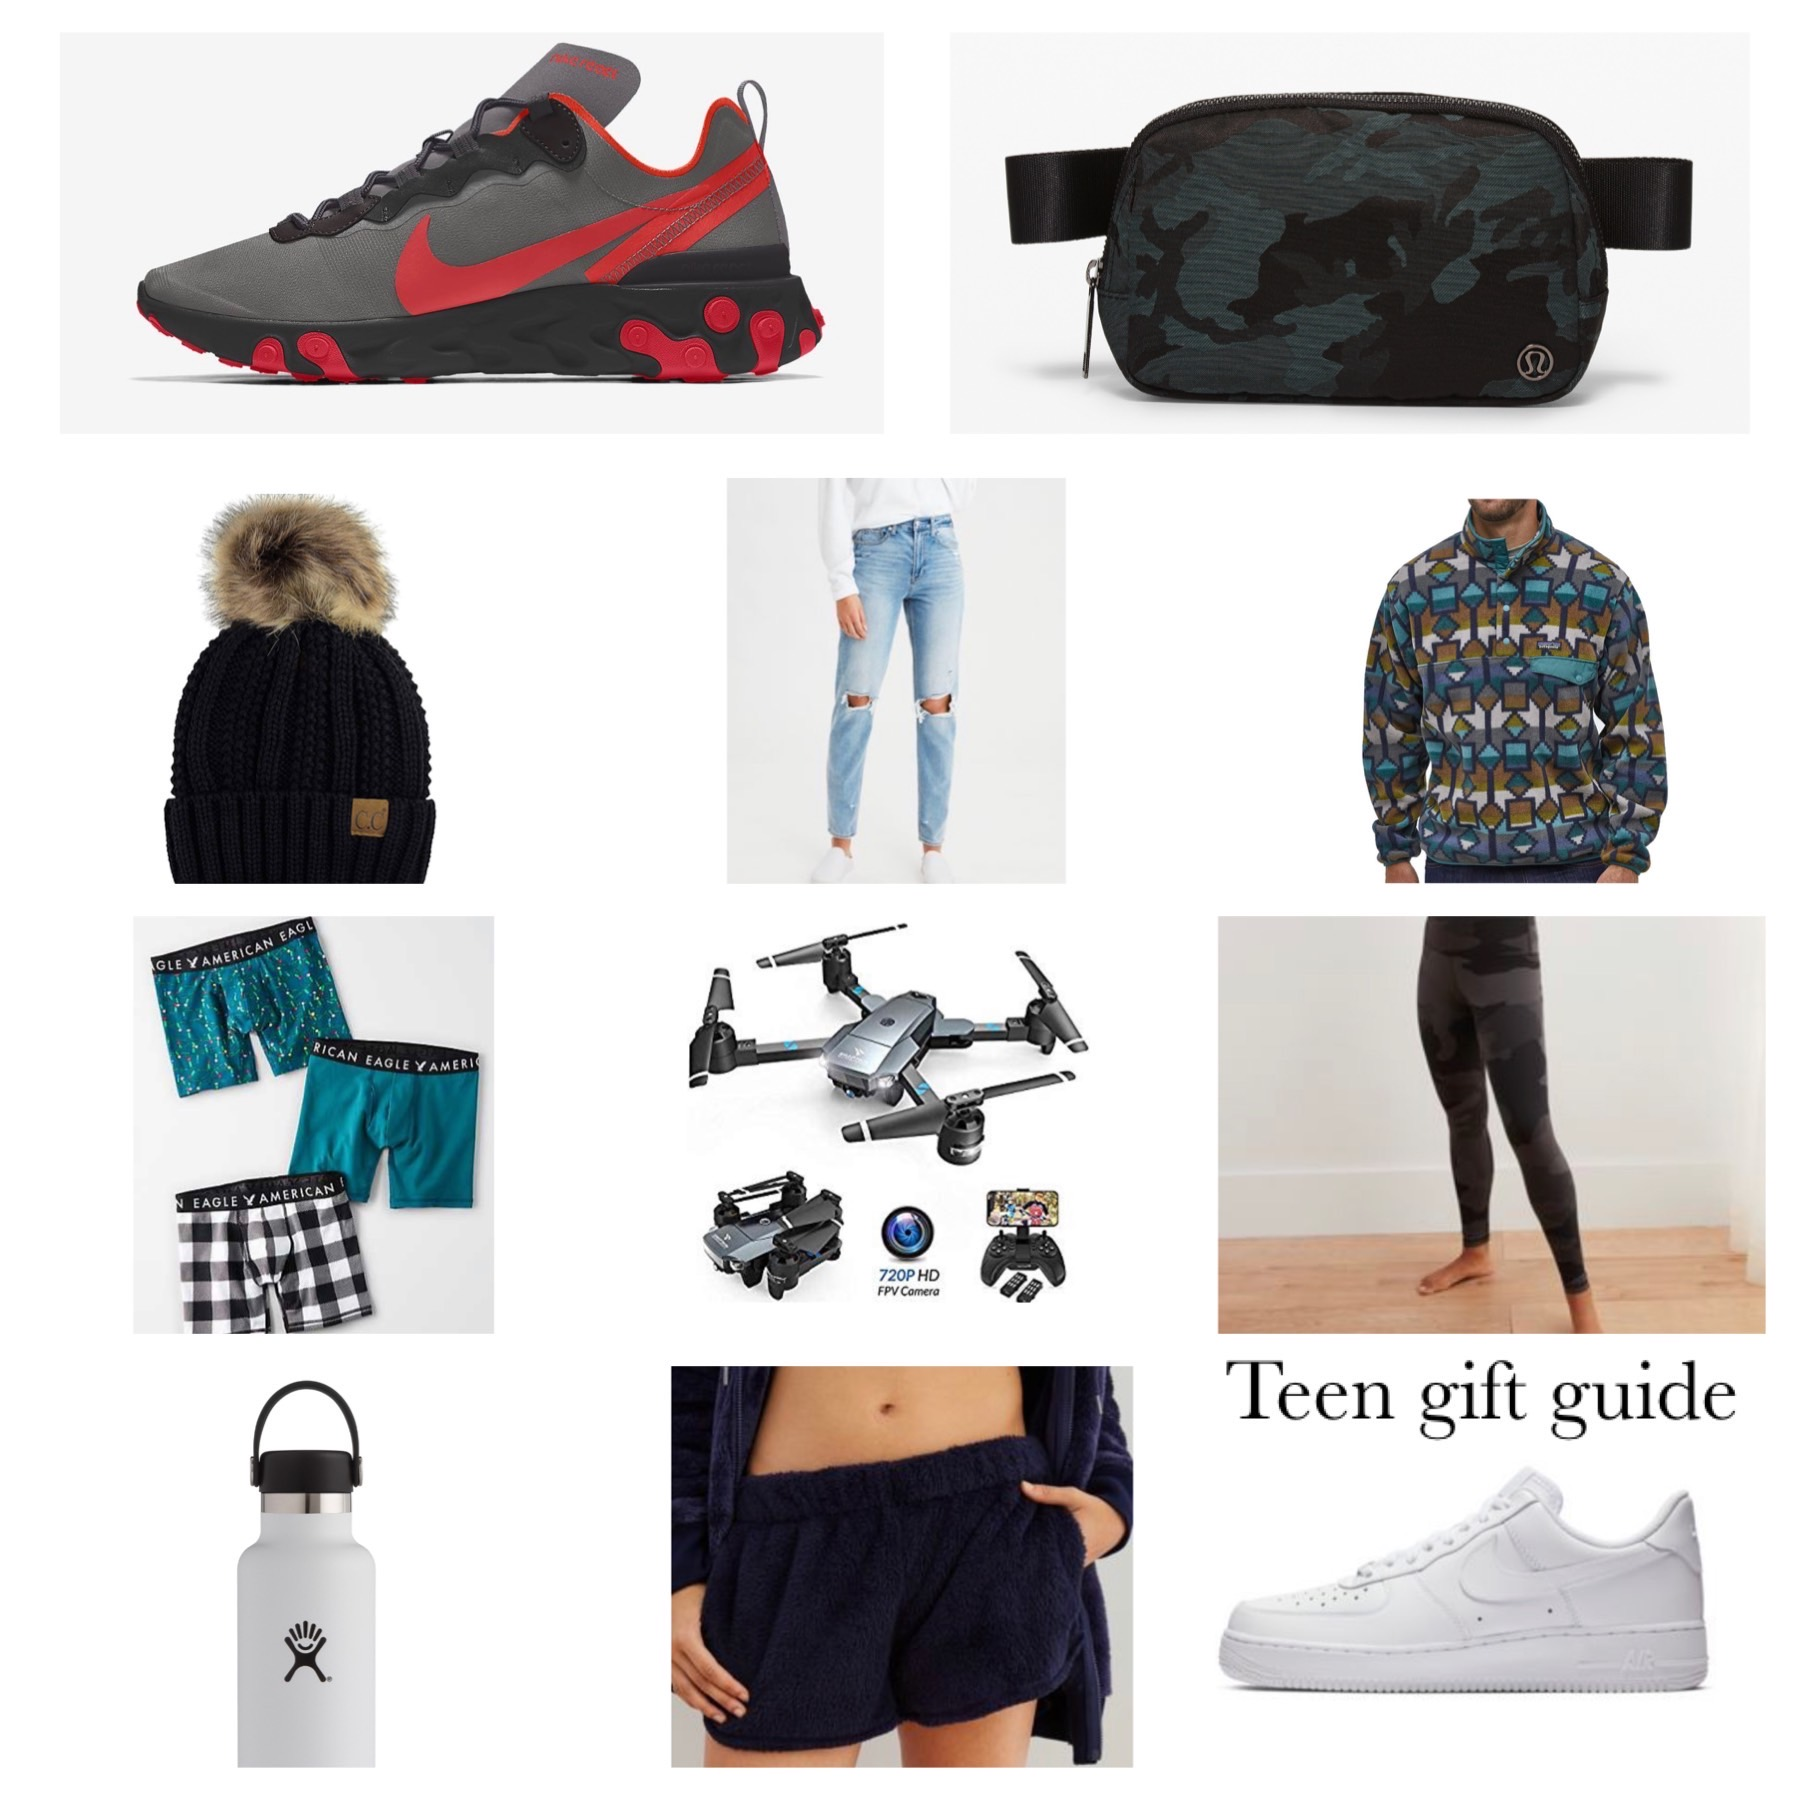 Teen and Young Adult Christmas gift guide 2019